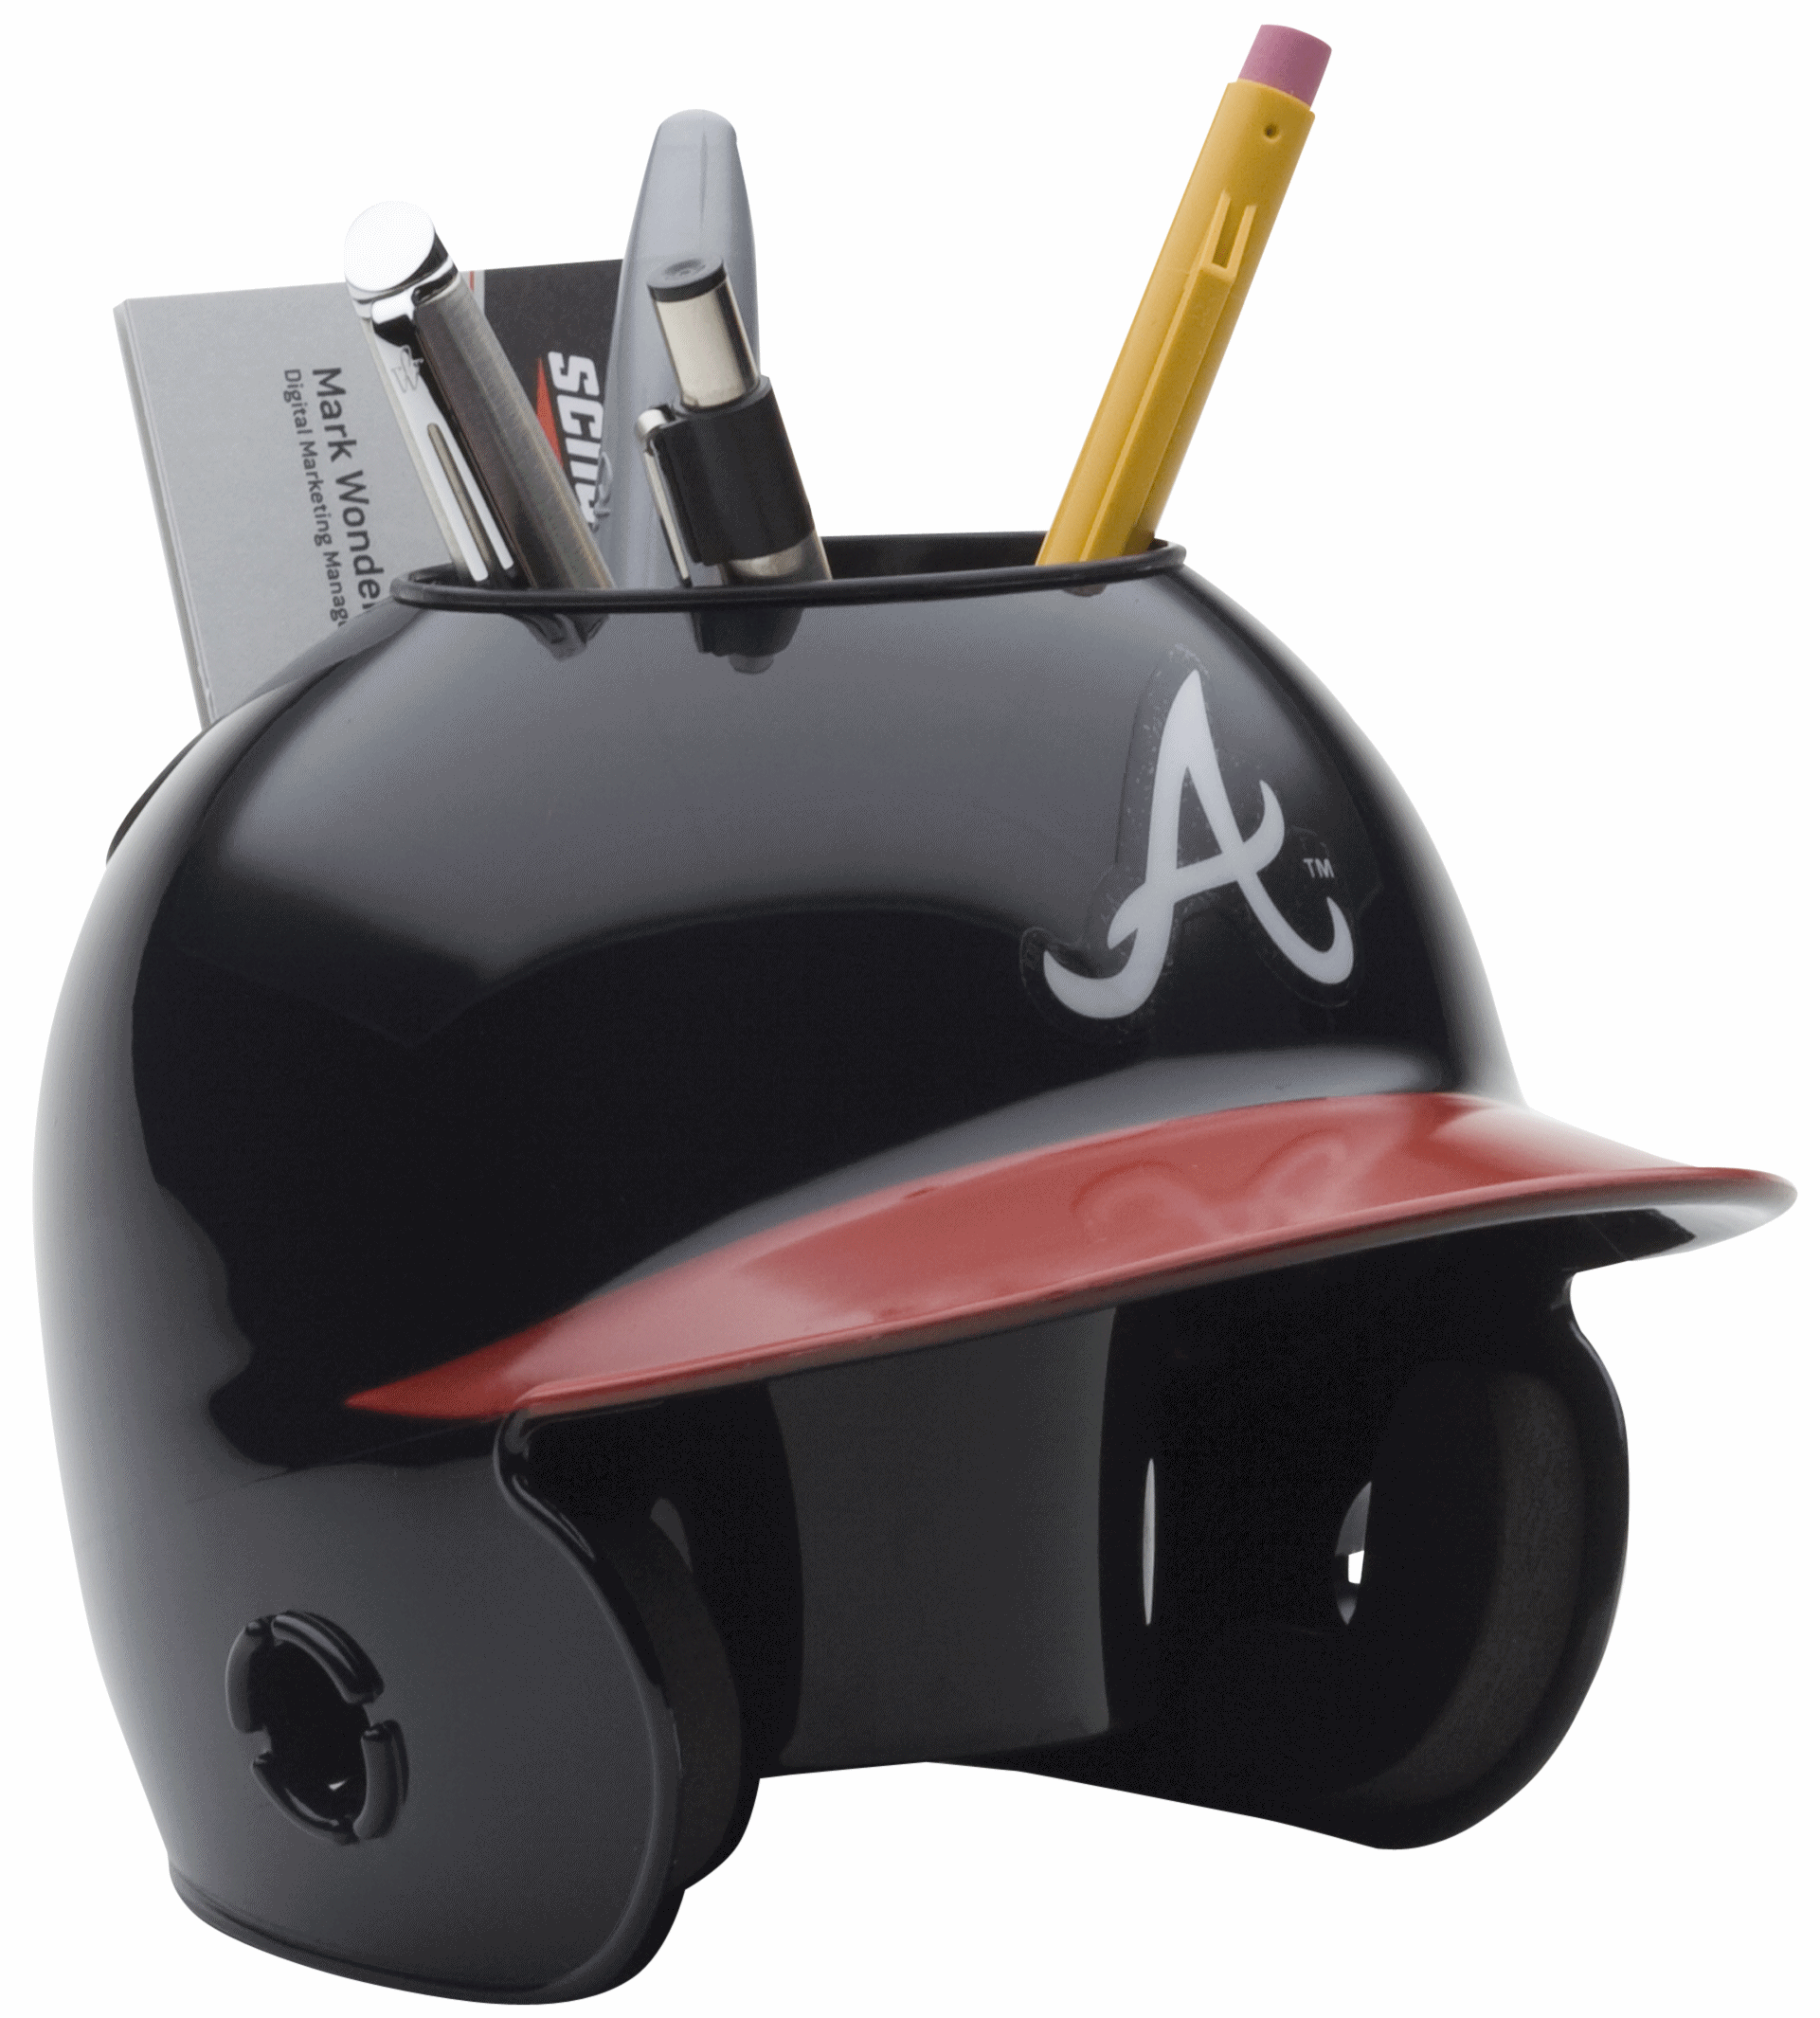 Atlanta Braves Miniature Batters Helmet Desk Caddy